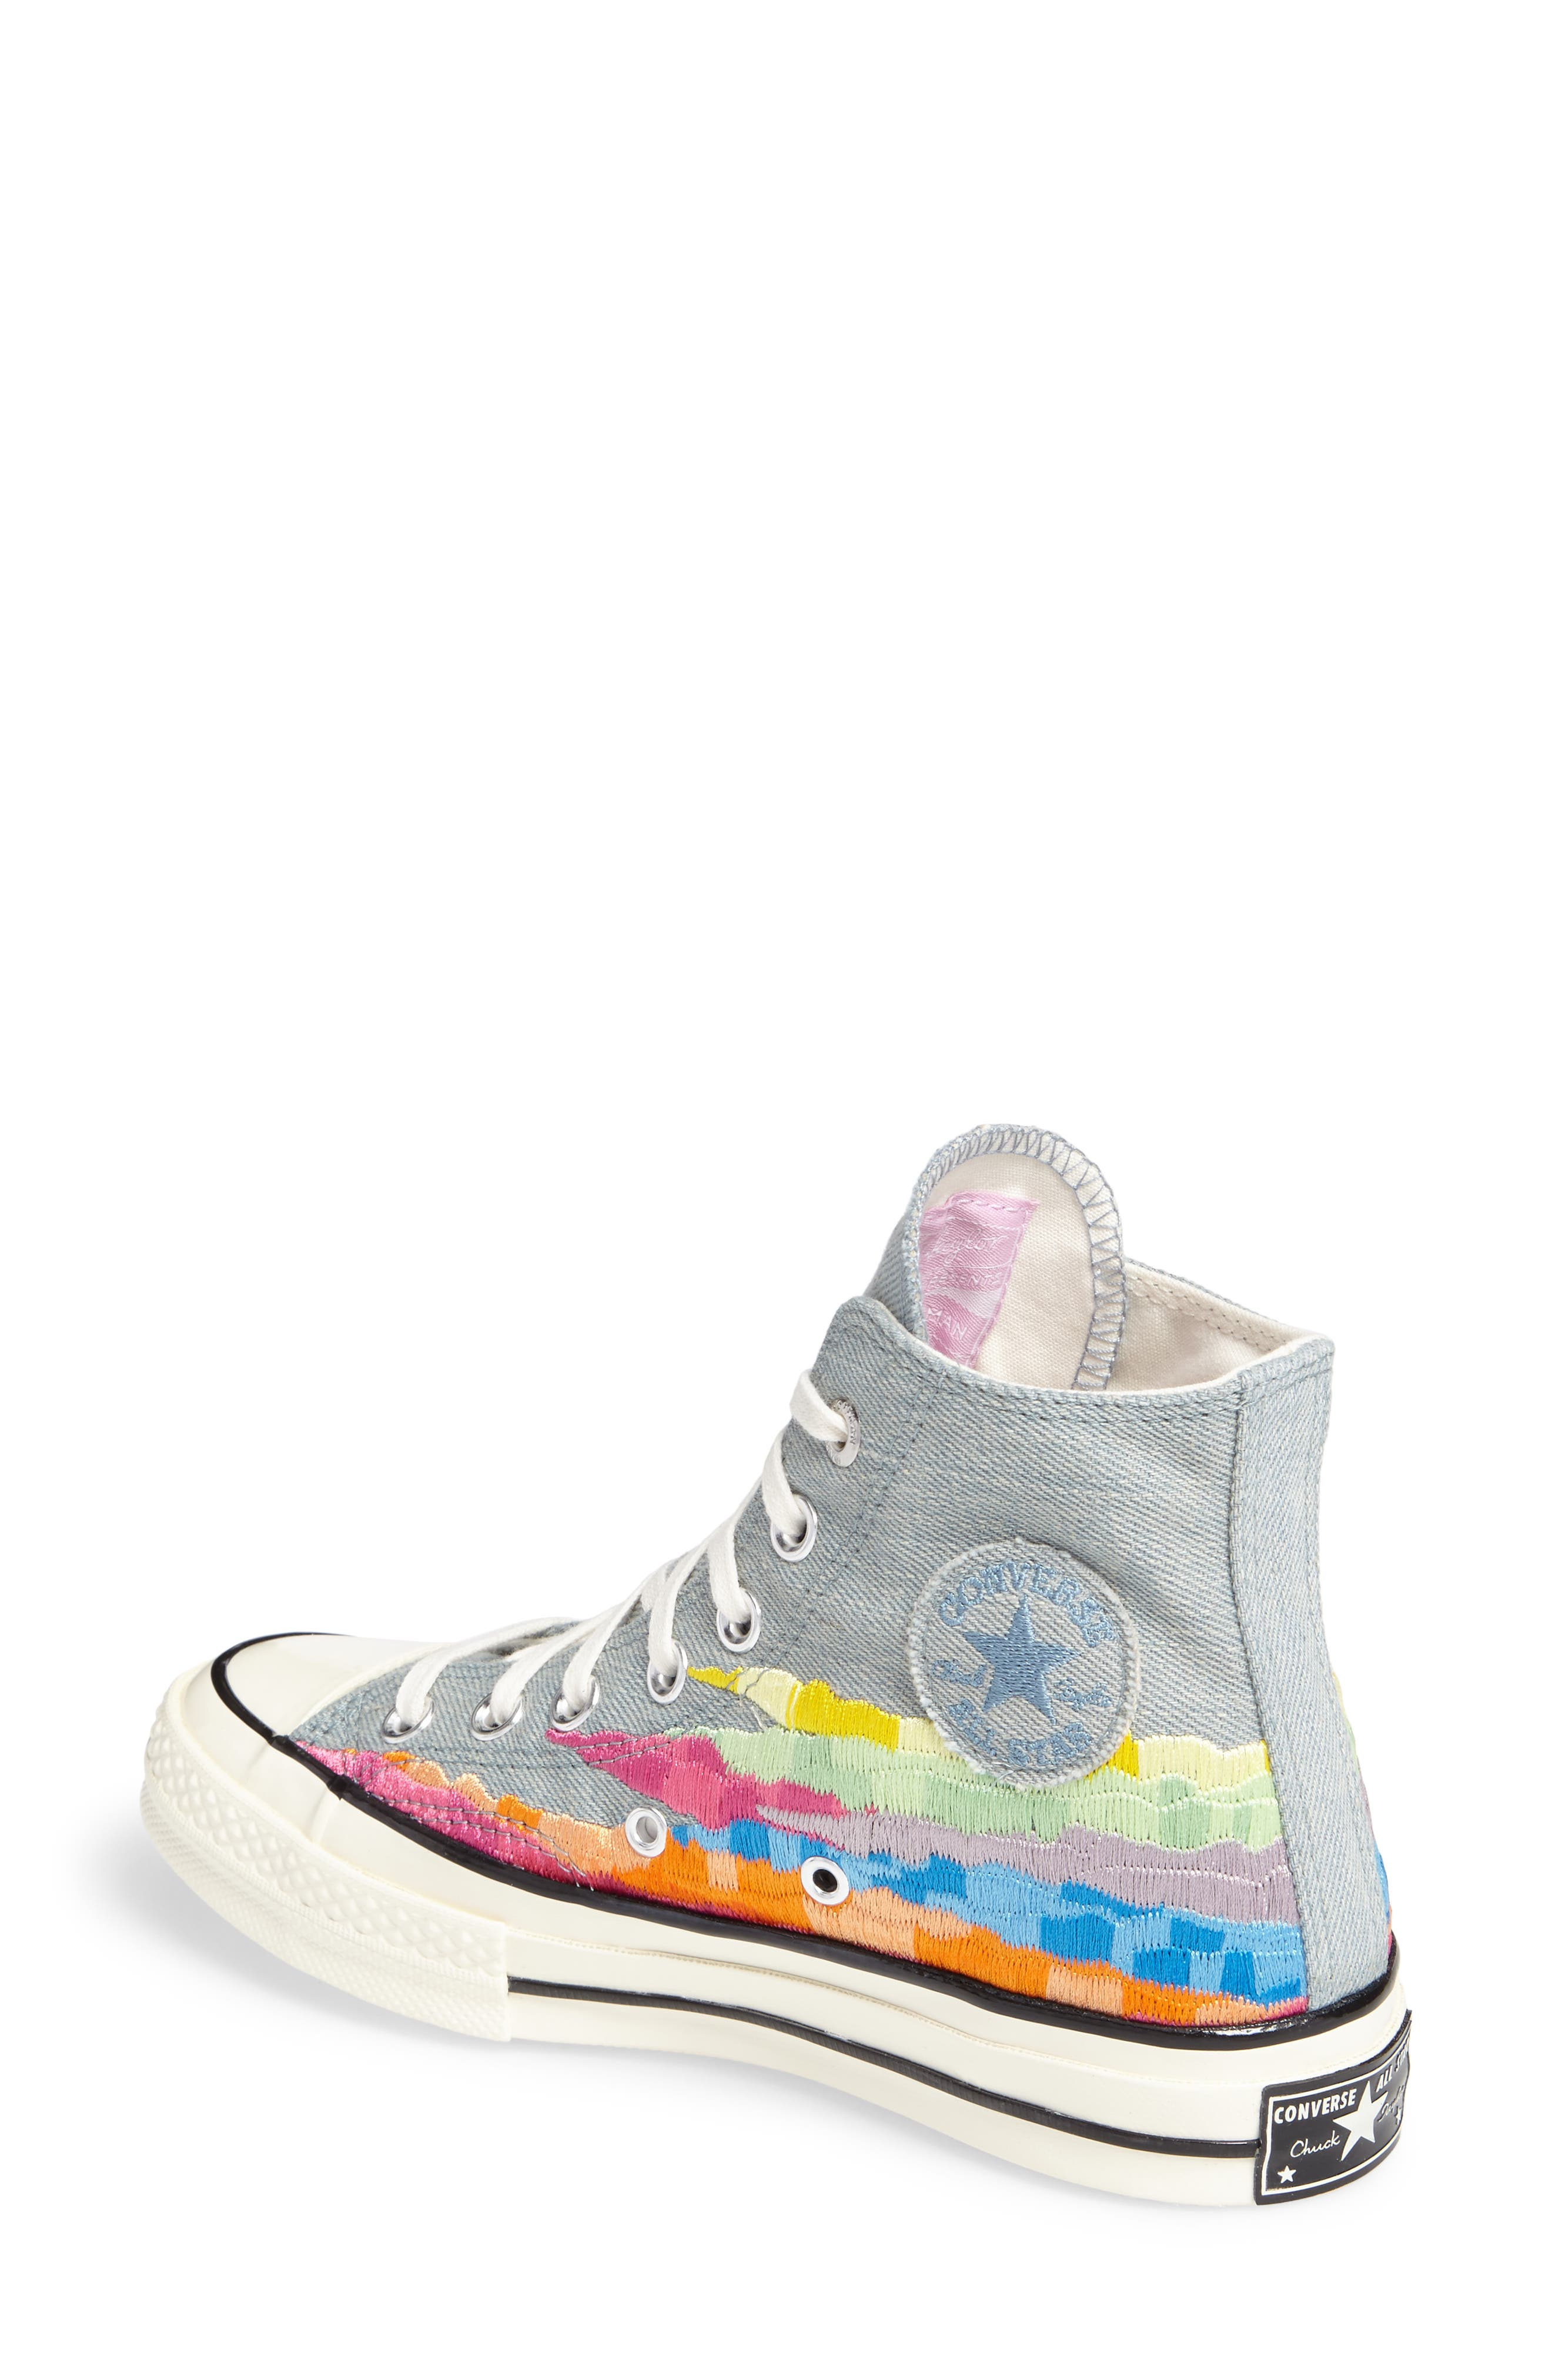 x Mara Hoffman All Star<sup>®</sup> Embroidered High Top Sneaker,                             Alternate thumbnail 4, color,